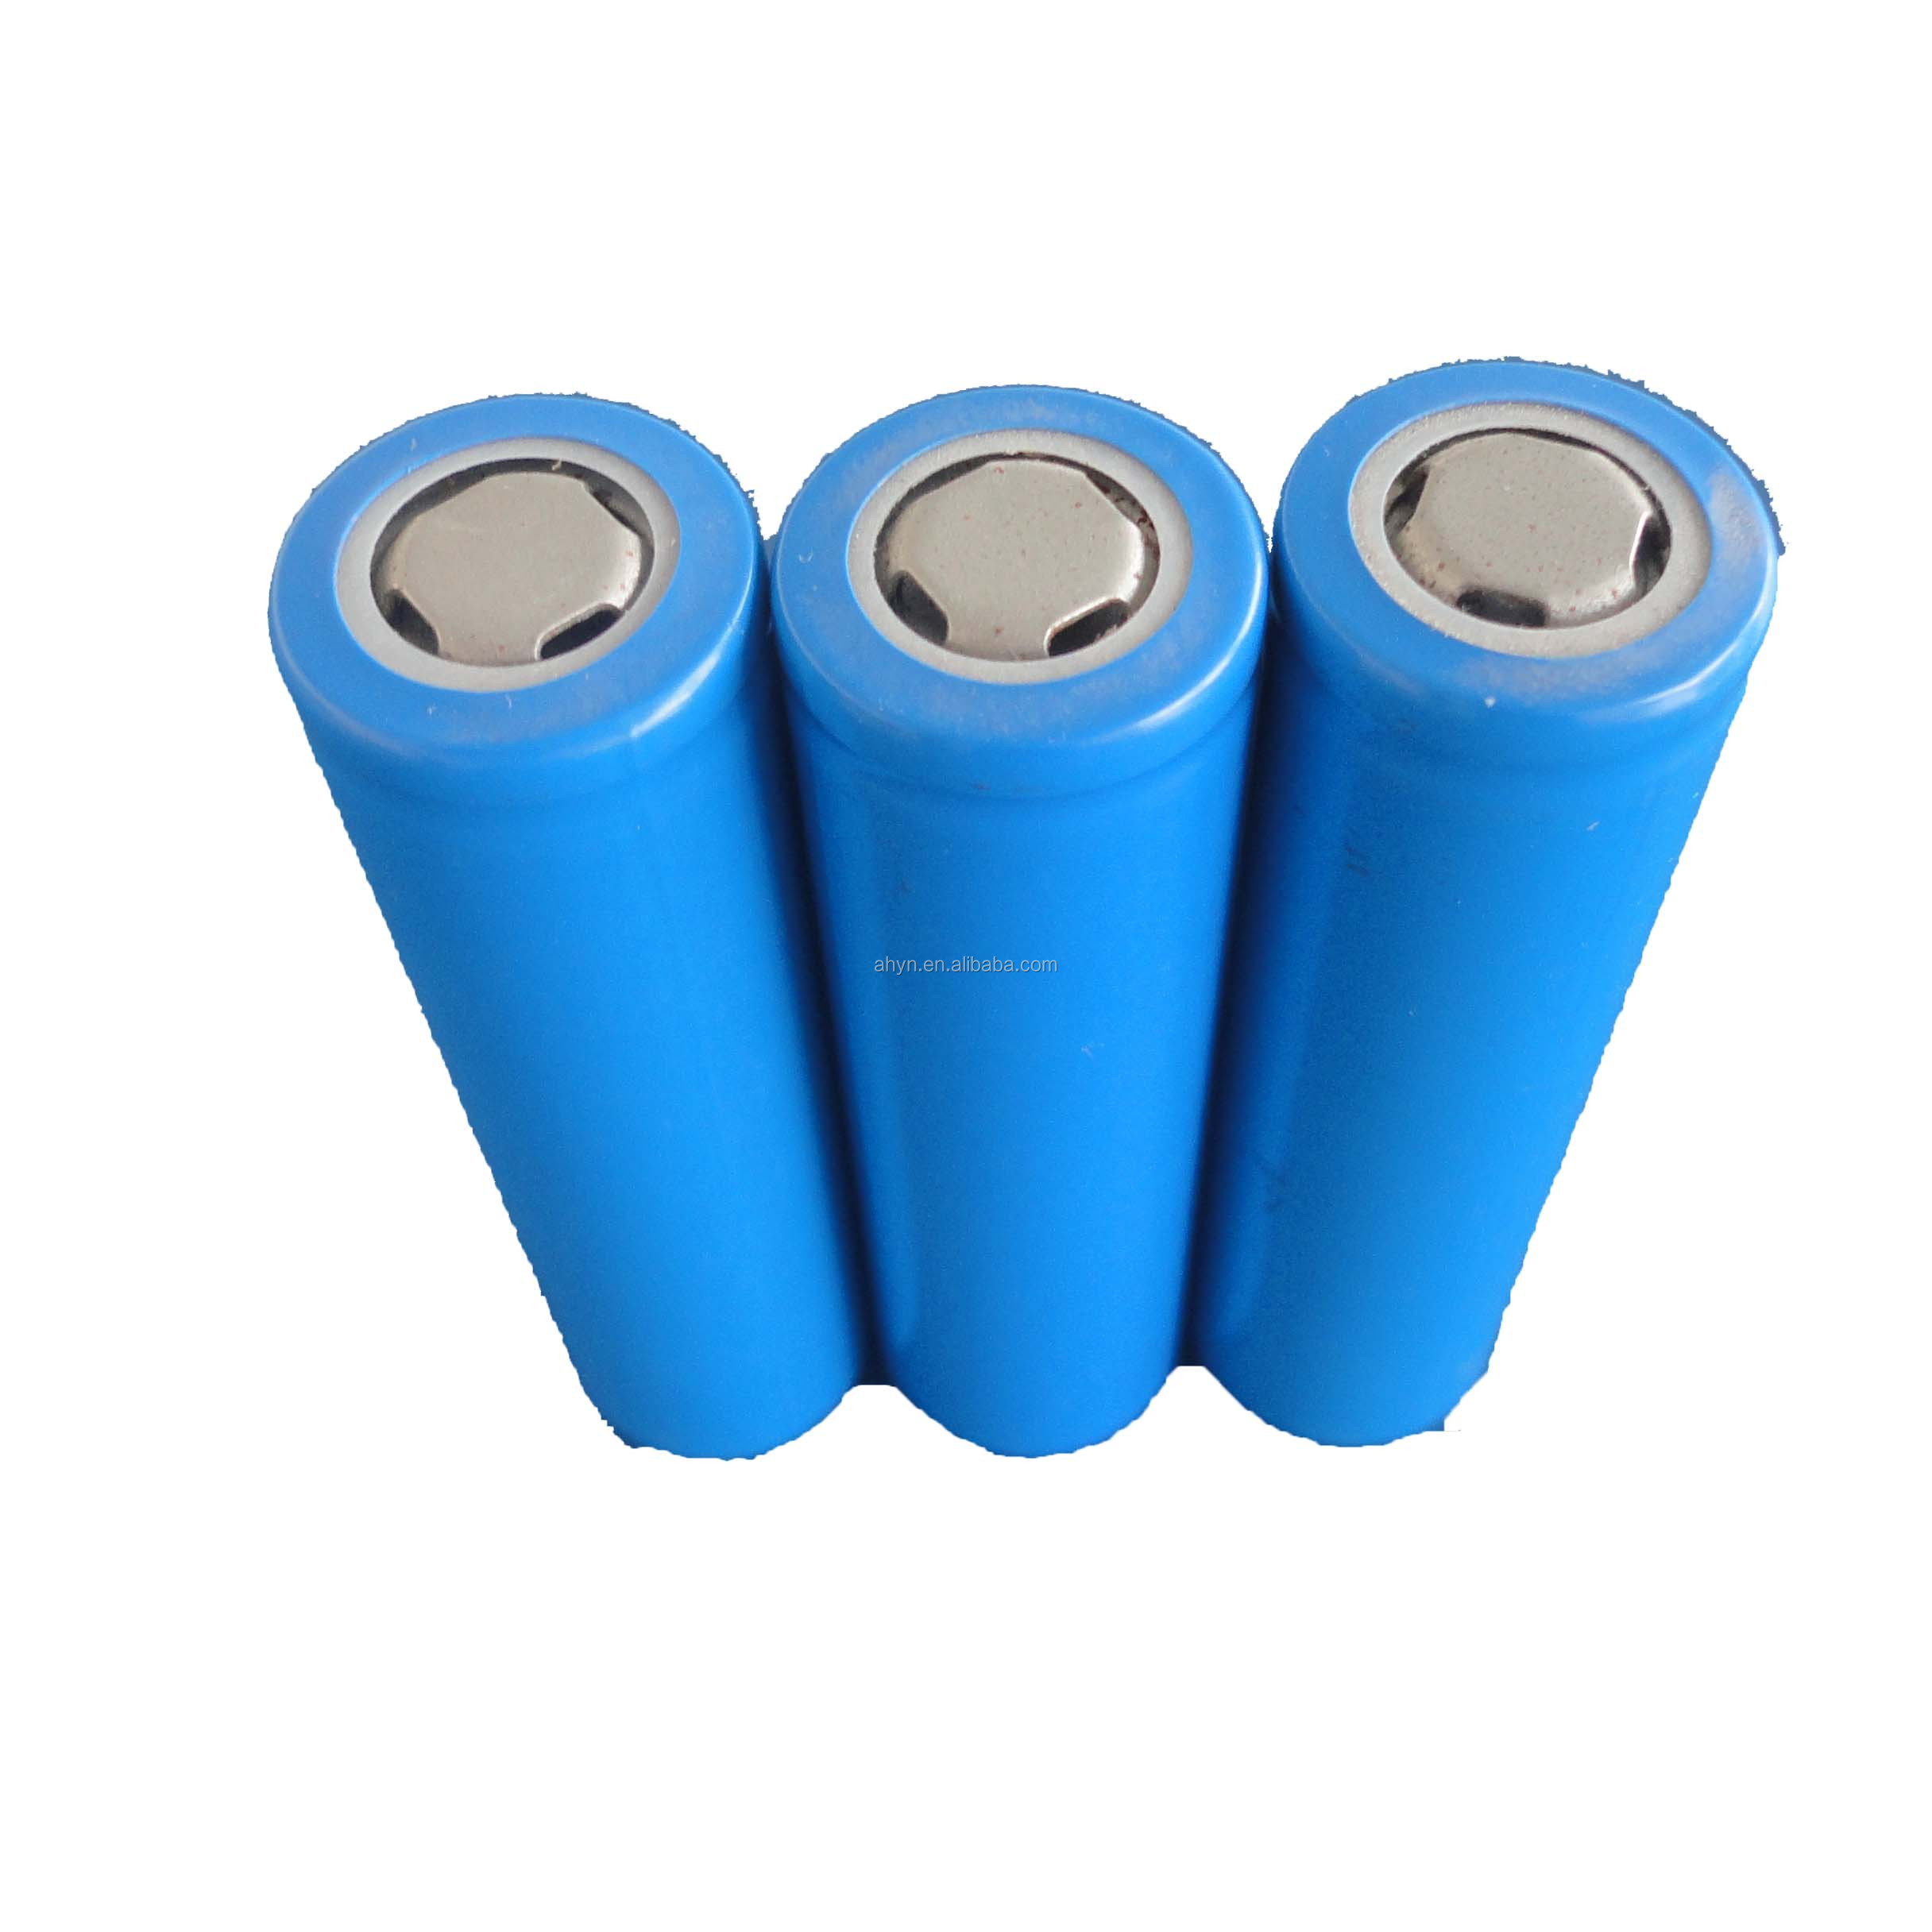 Alibaba China high quality 18650 3.7v 1800mah rechargeable li-ion battery for electronic products electronic cigarette